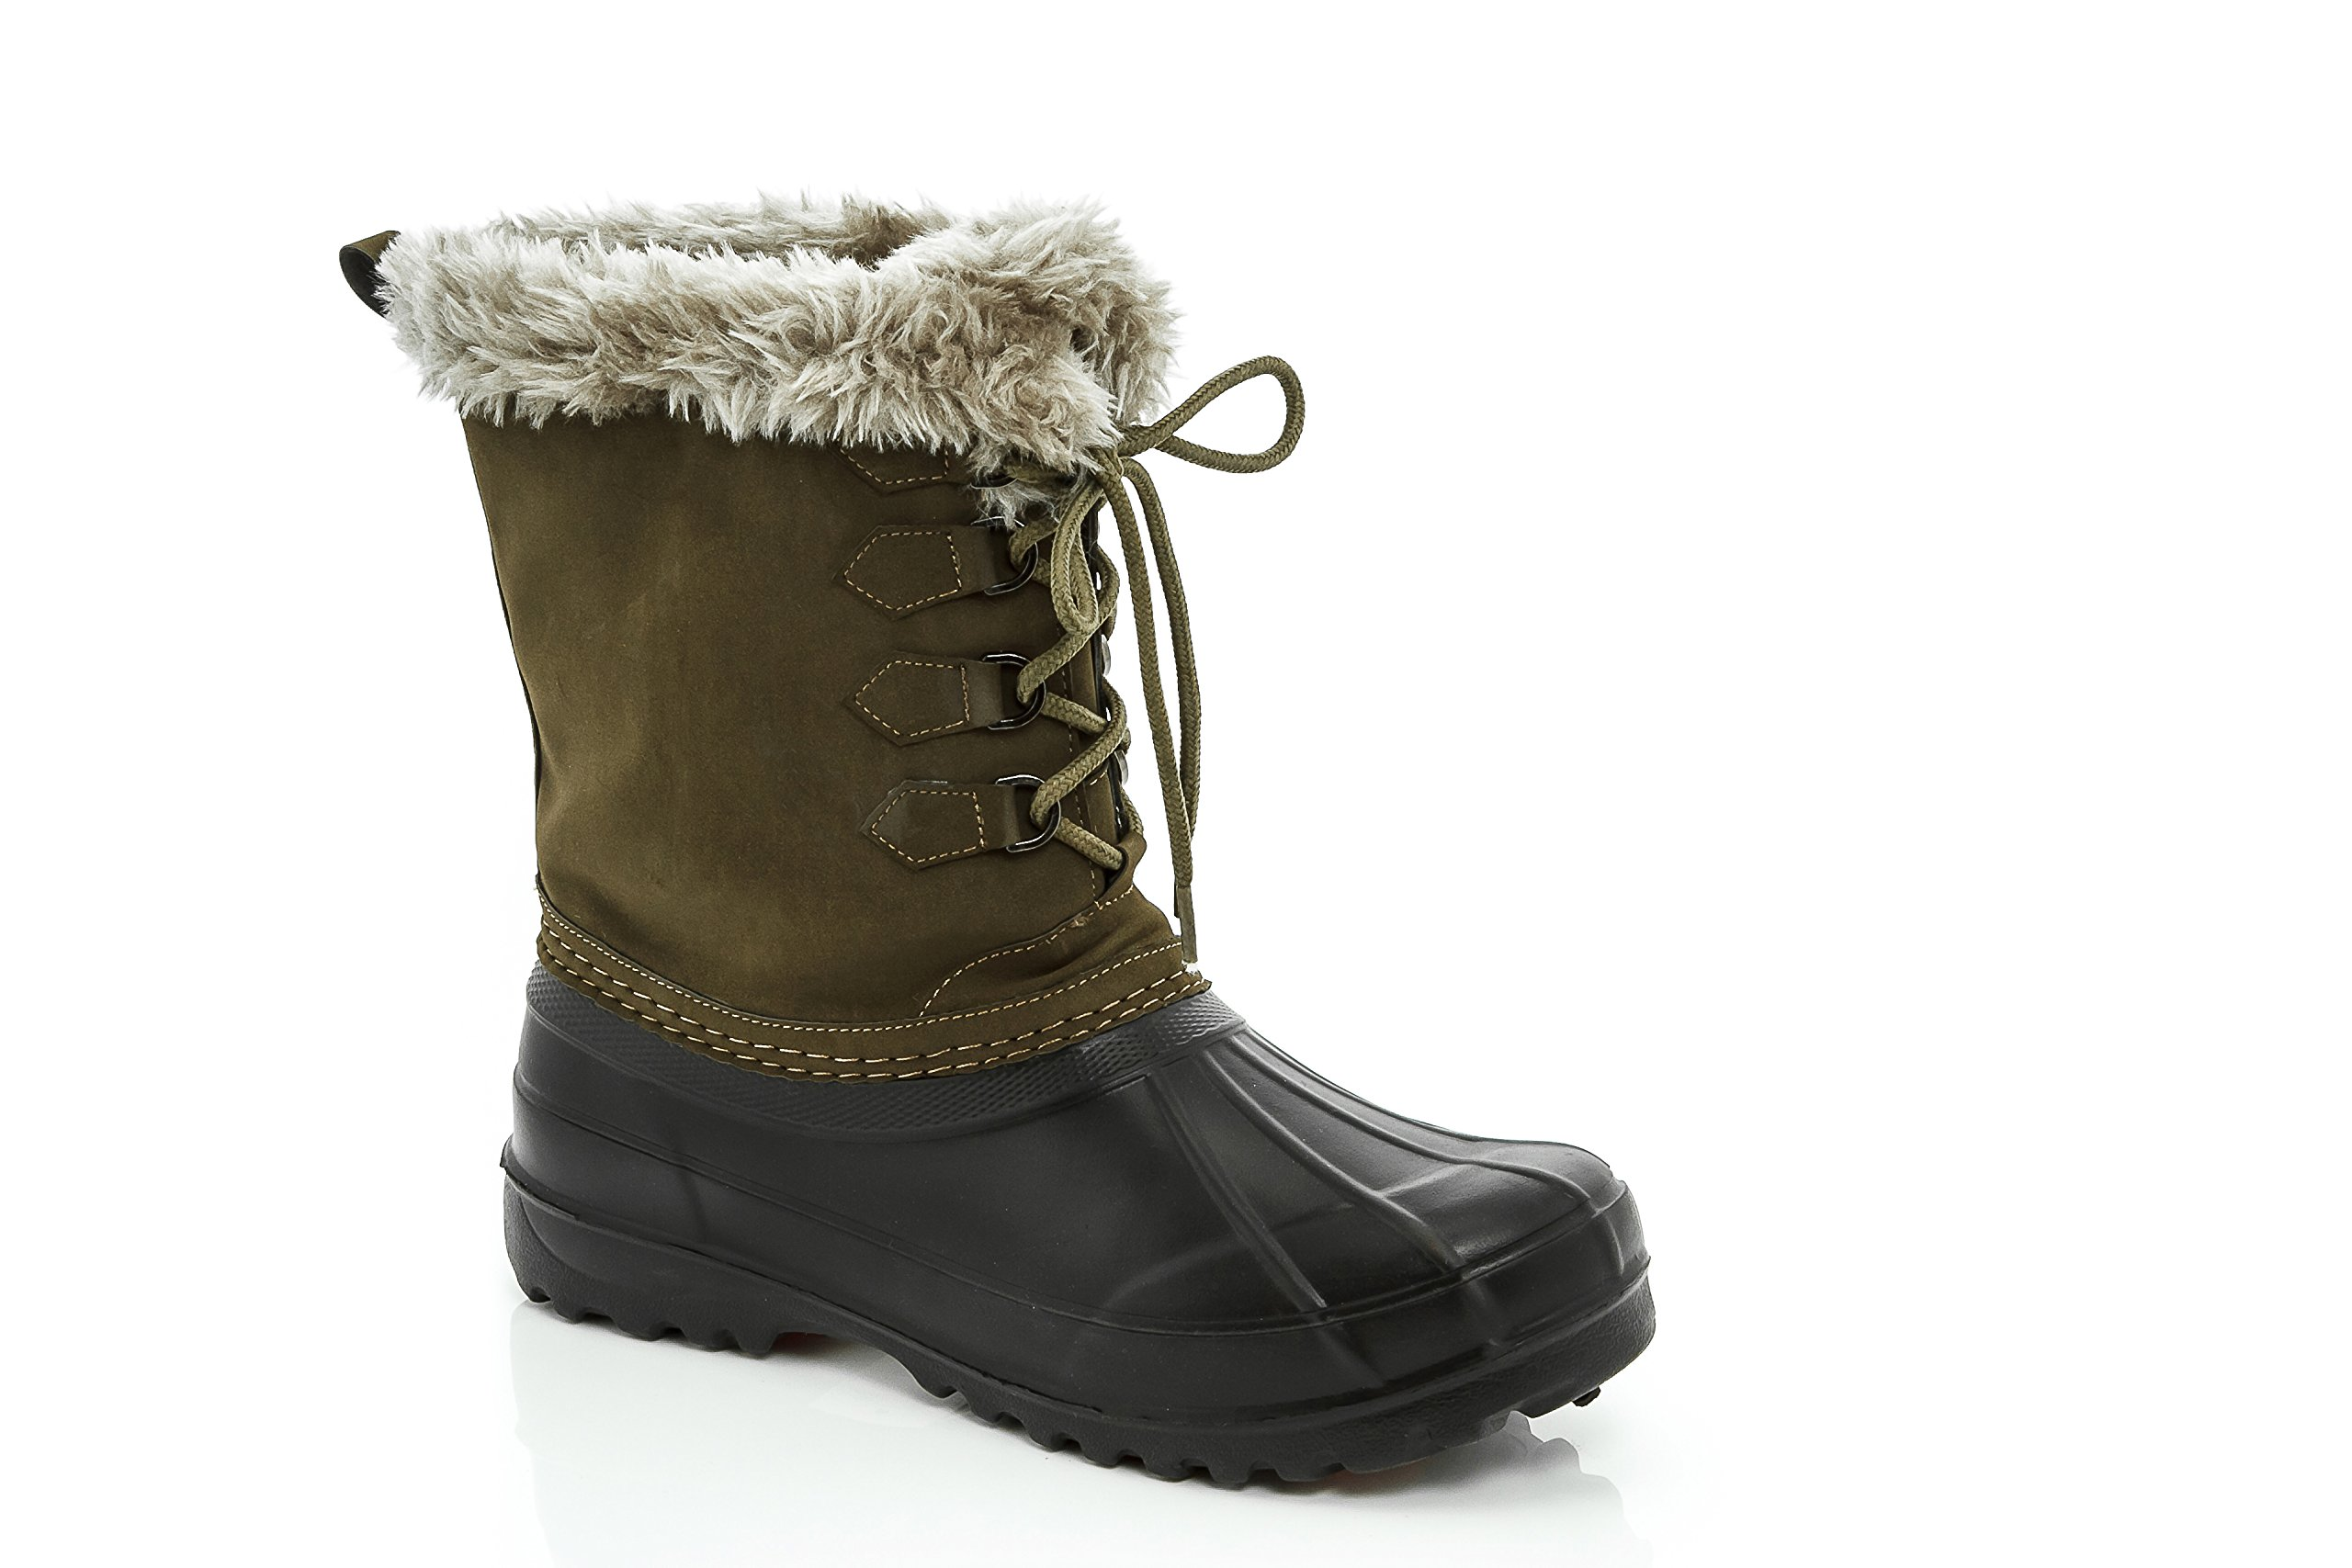 Lady Godiva Womens Duck-10 High Ankle Winter Snow Rain Boot Green & Black Size 6.5 by Lady Godiva